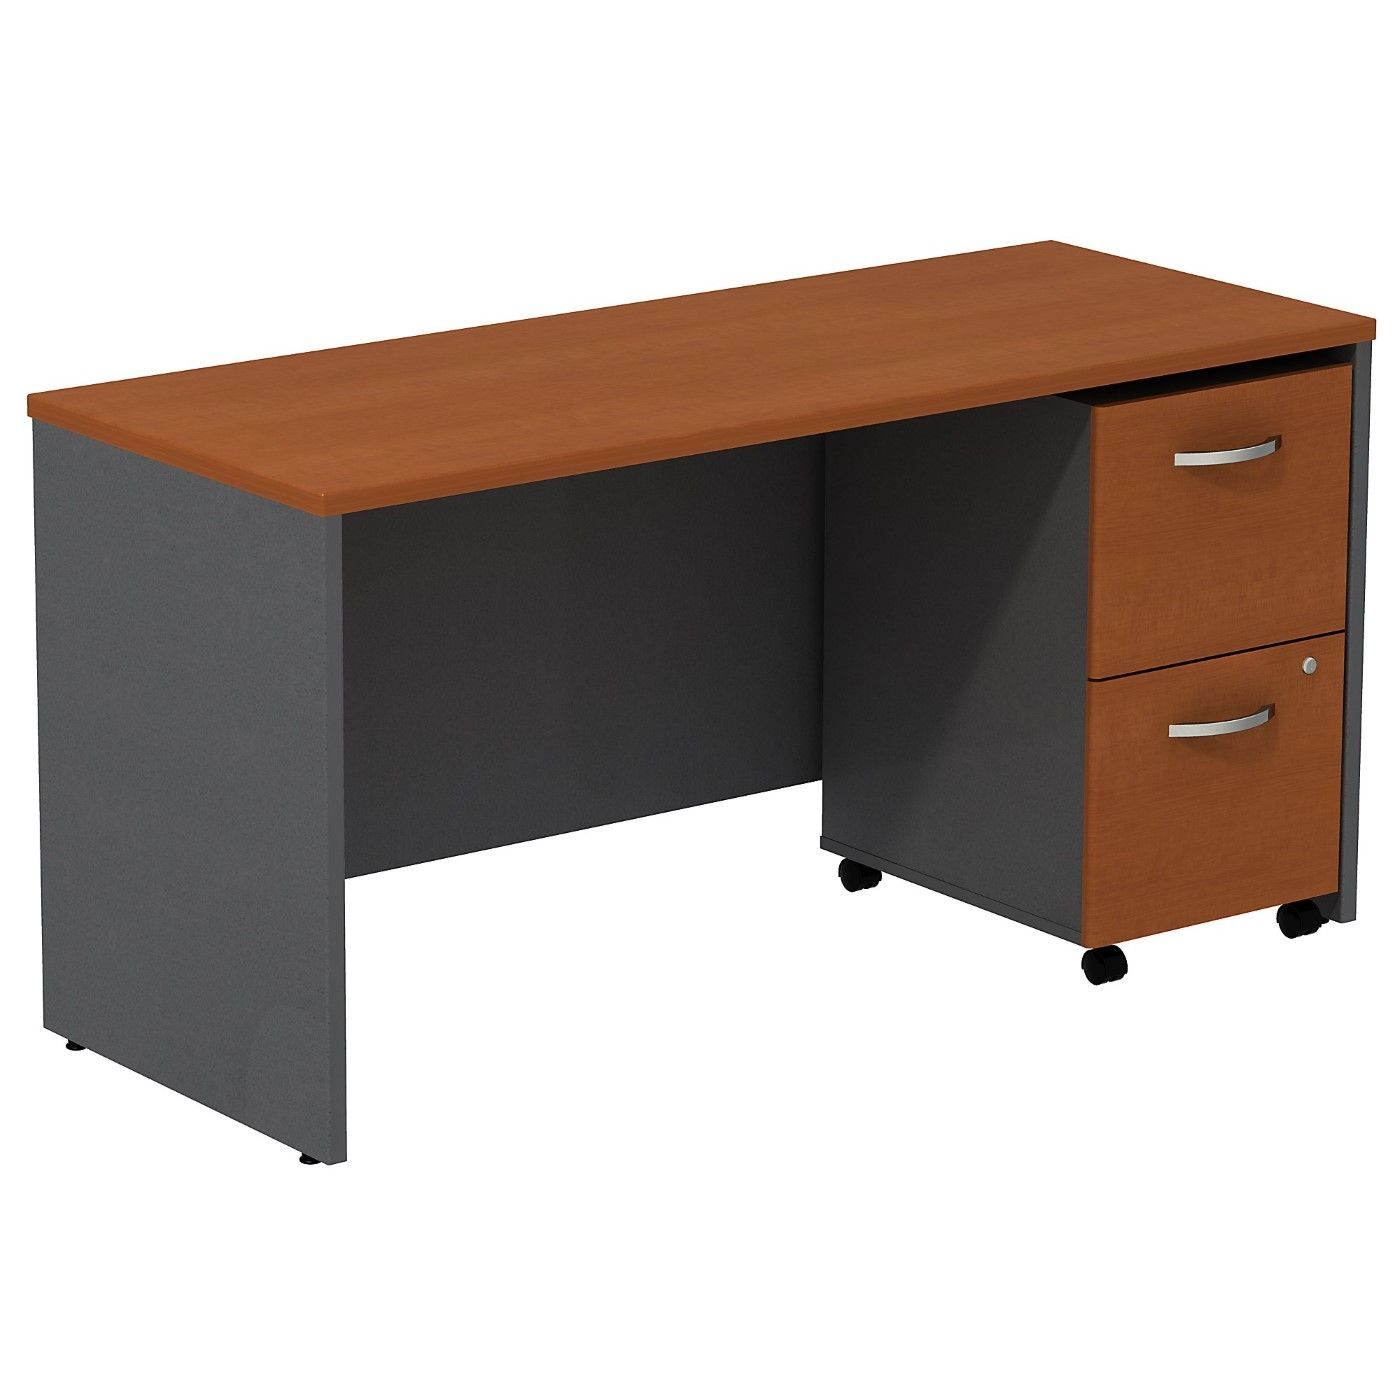 BUSH BUSINESS FURNITURE SERIES C DESK CREDENZA WITH 2 DRAWER MOBILE PEDESTAL. FREE SHIPPING